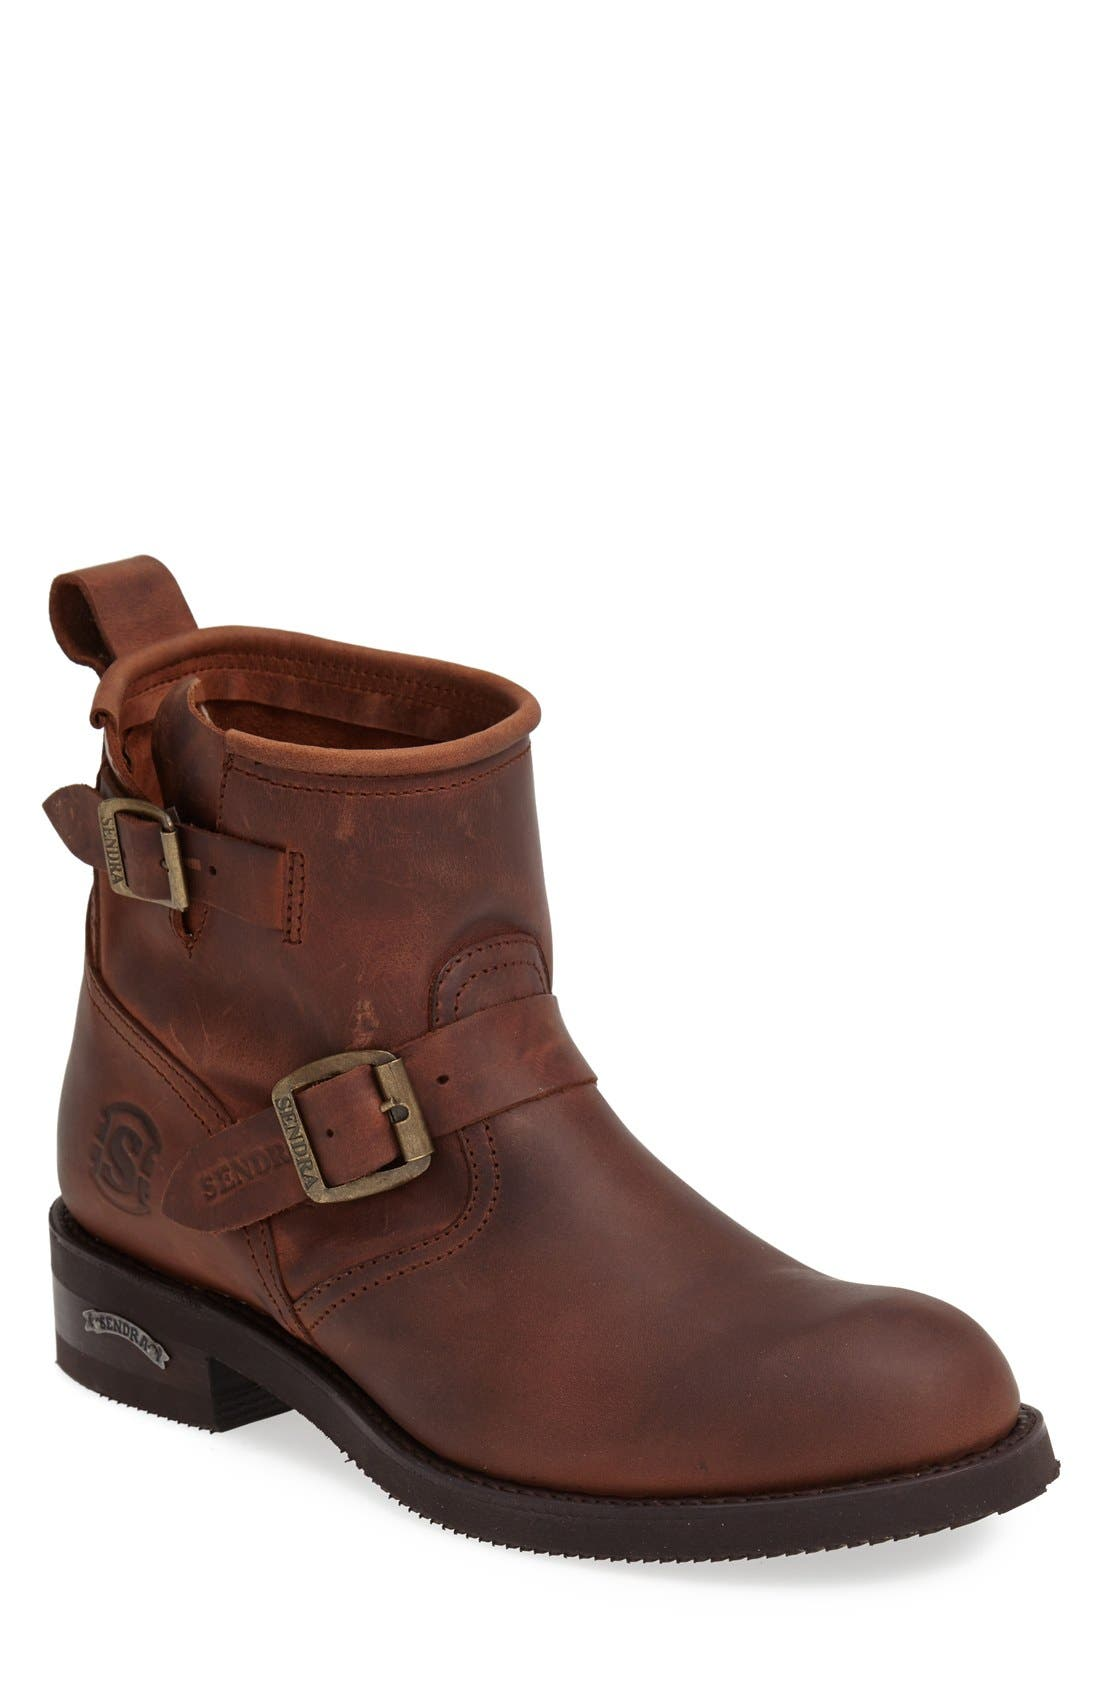 'Engineer' Harness Boot,                             Main thumbnail 1, color,                             Brown